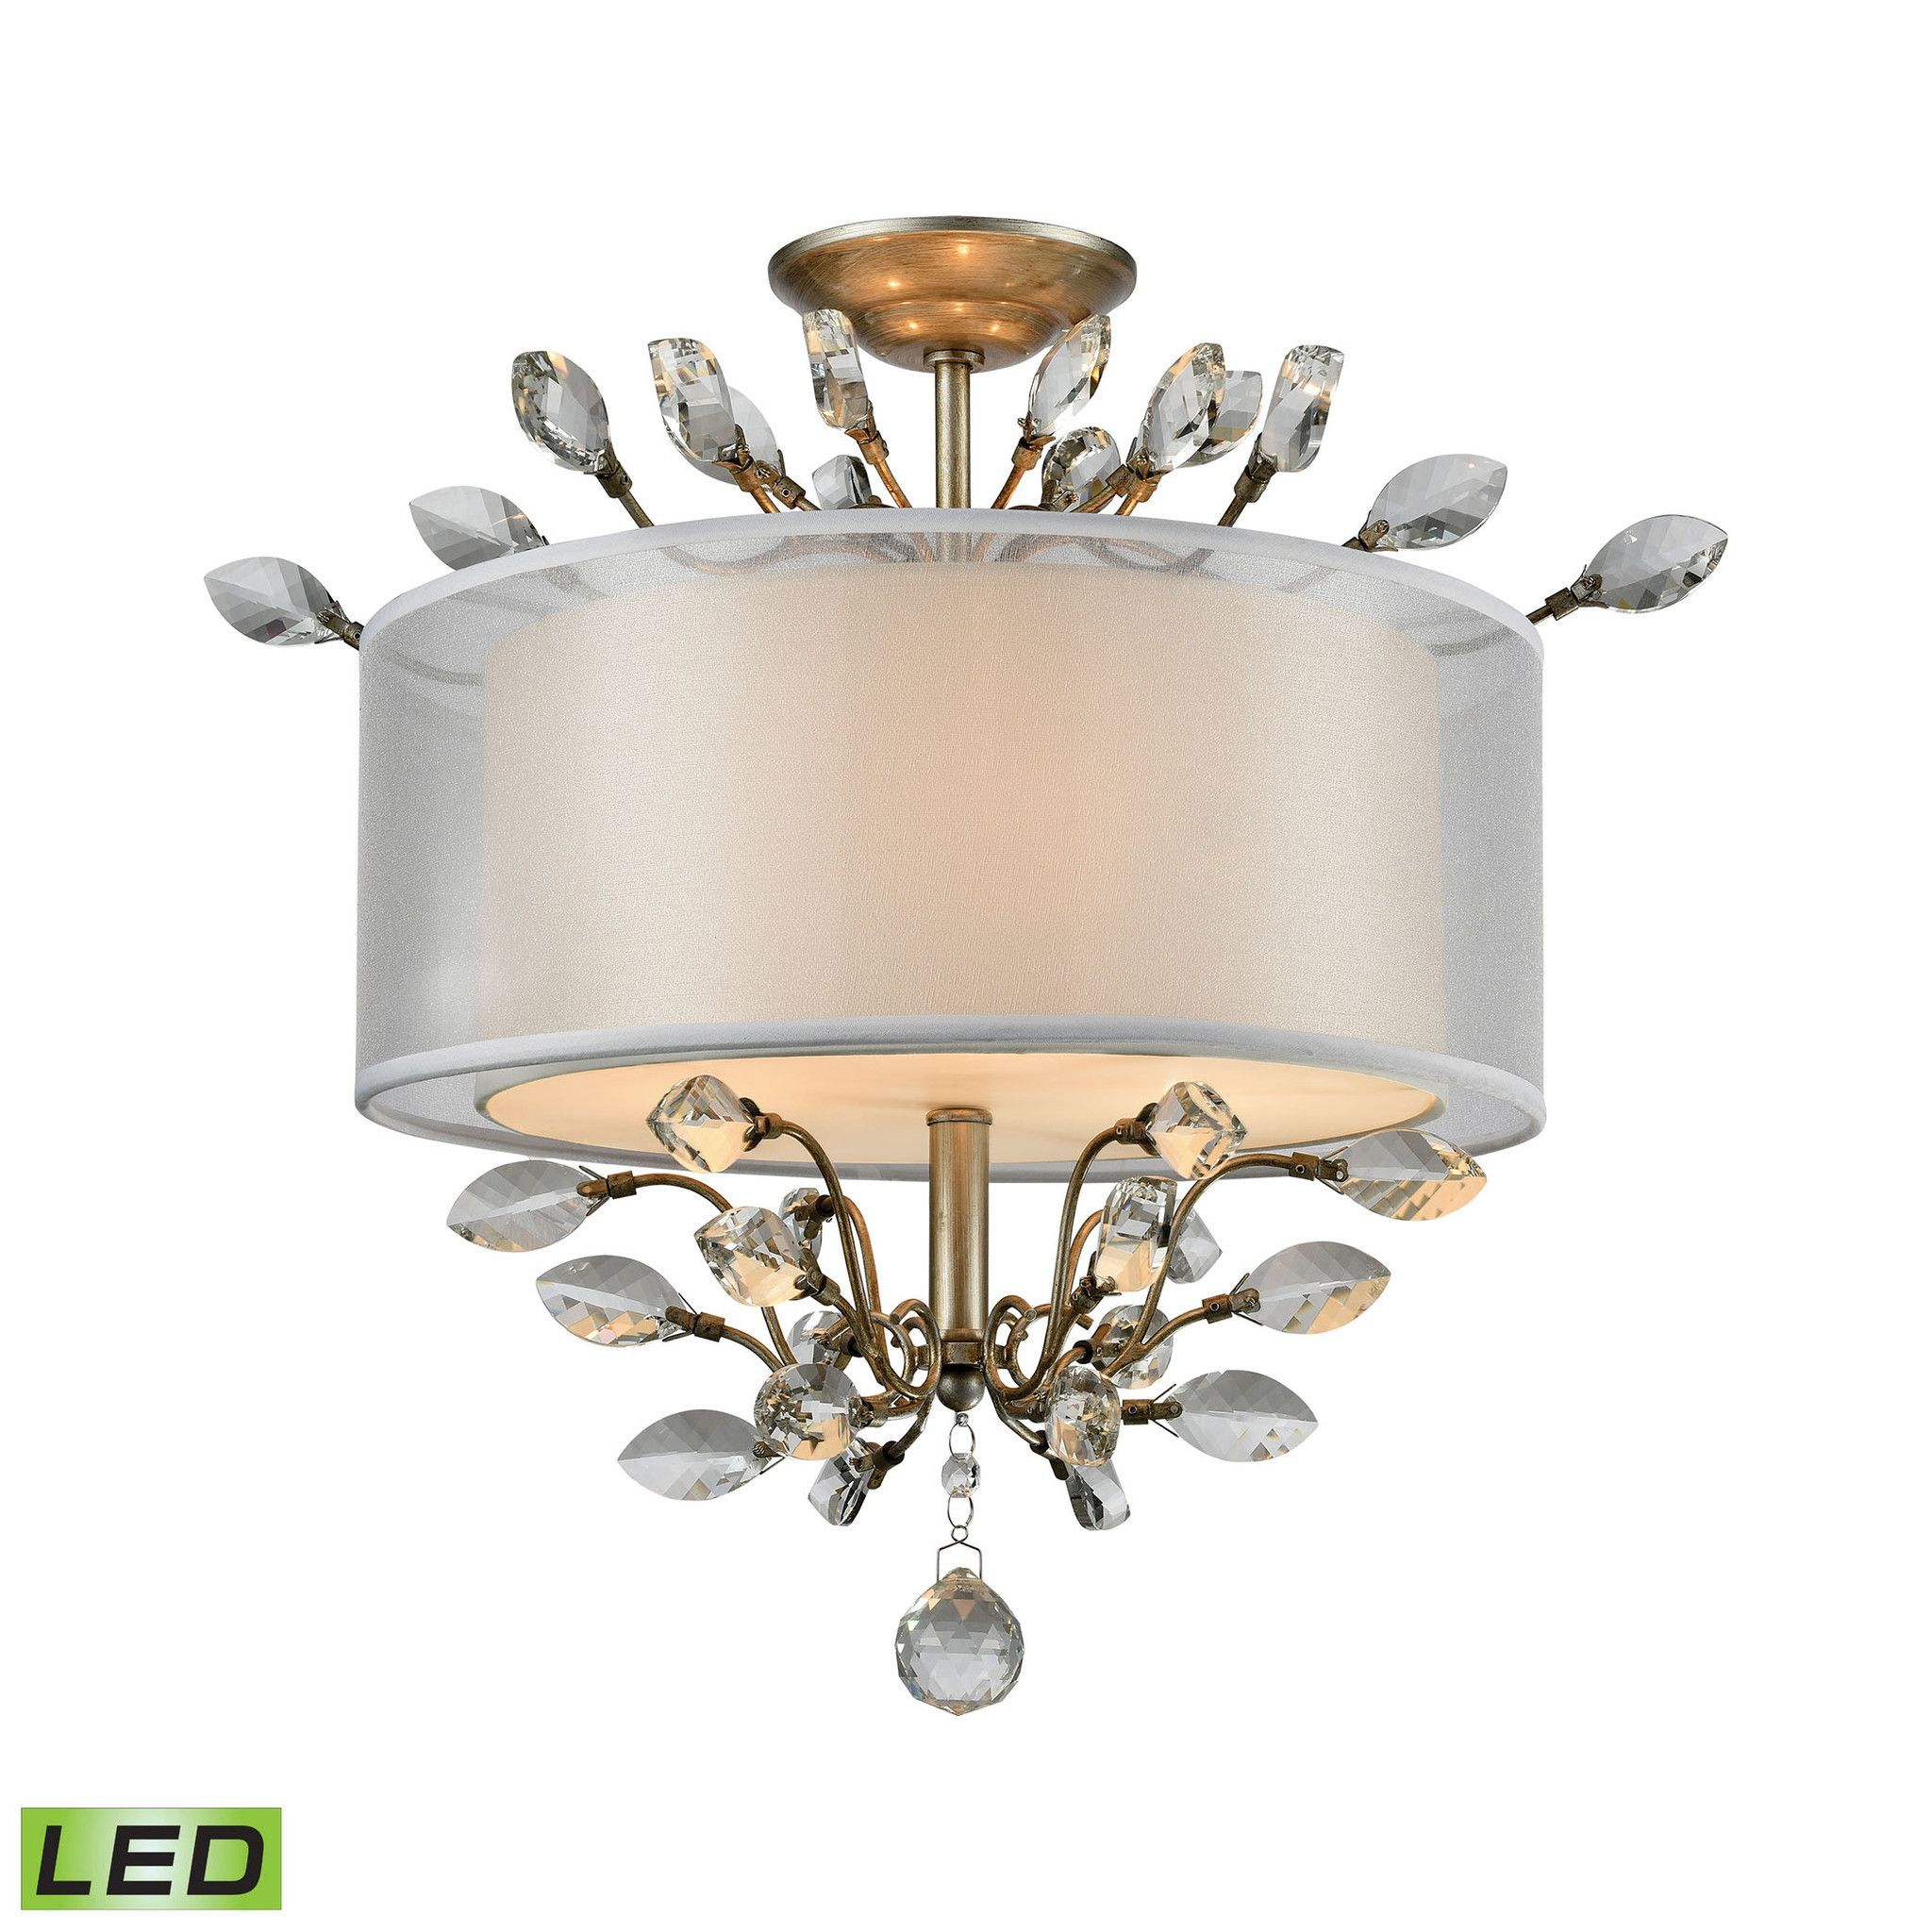 ELK Lighting 16281/3-LED Asbury Collection Aged Silver Finish